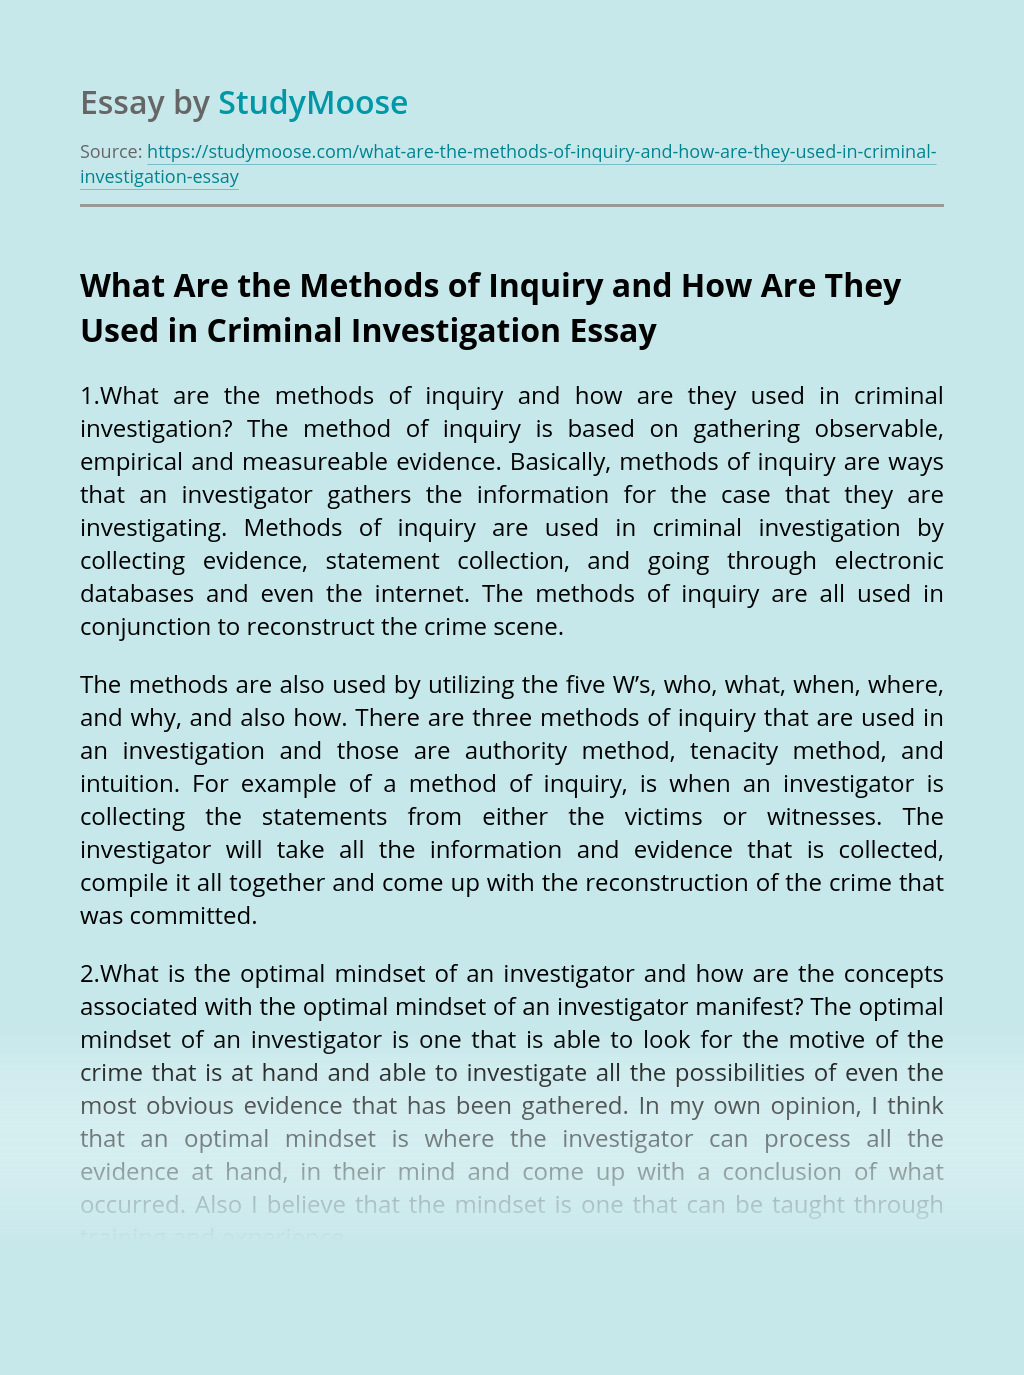 What Are the Methods of Inquiry and How Are They Used in Criminal Investigation